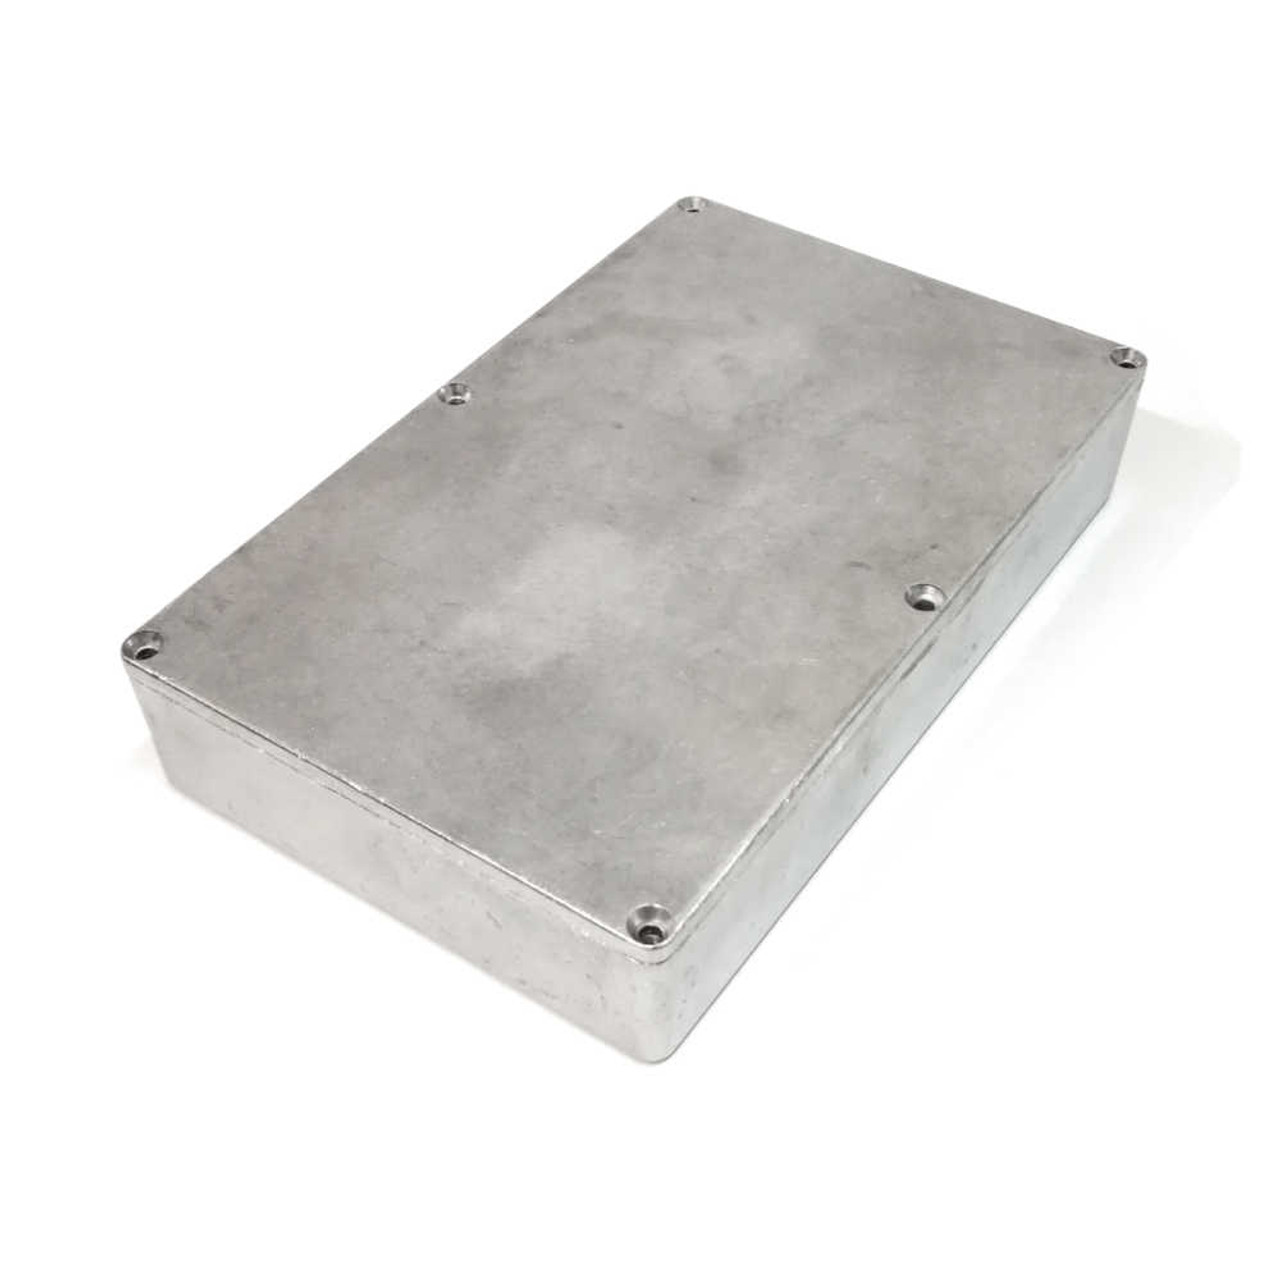 Generic 1590DD - Large Pedal Enclosure